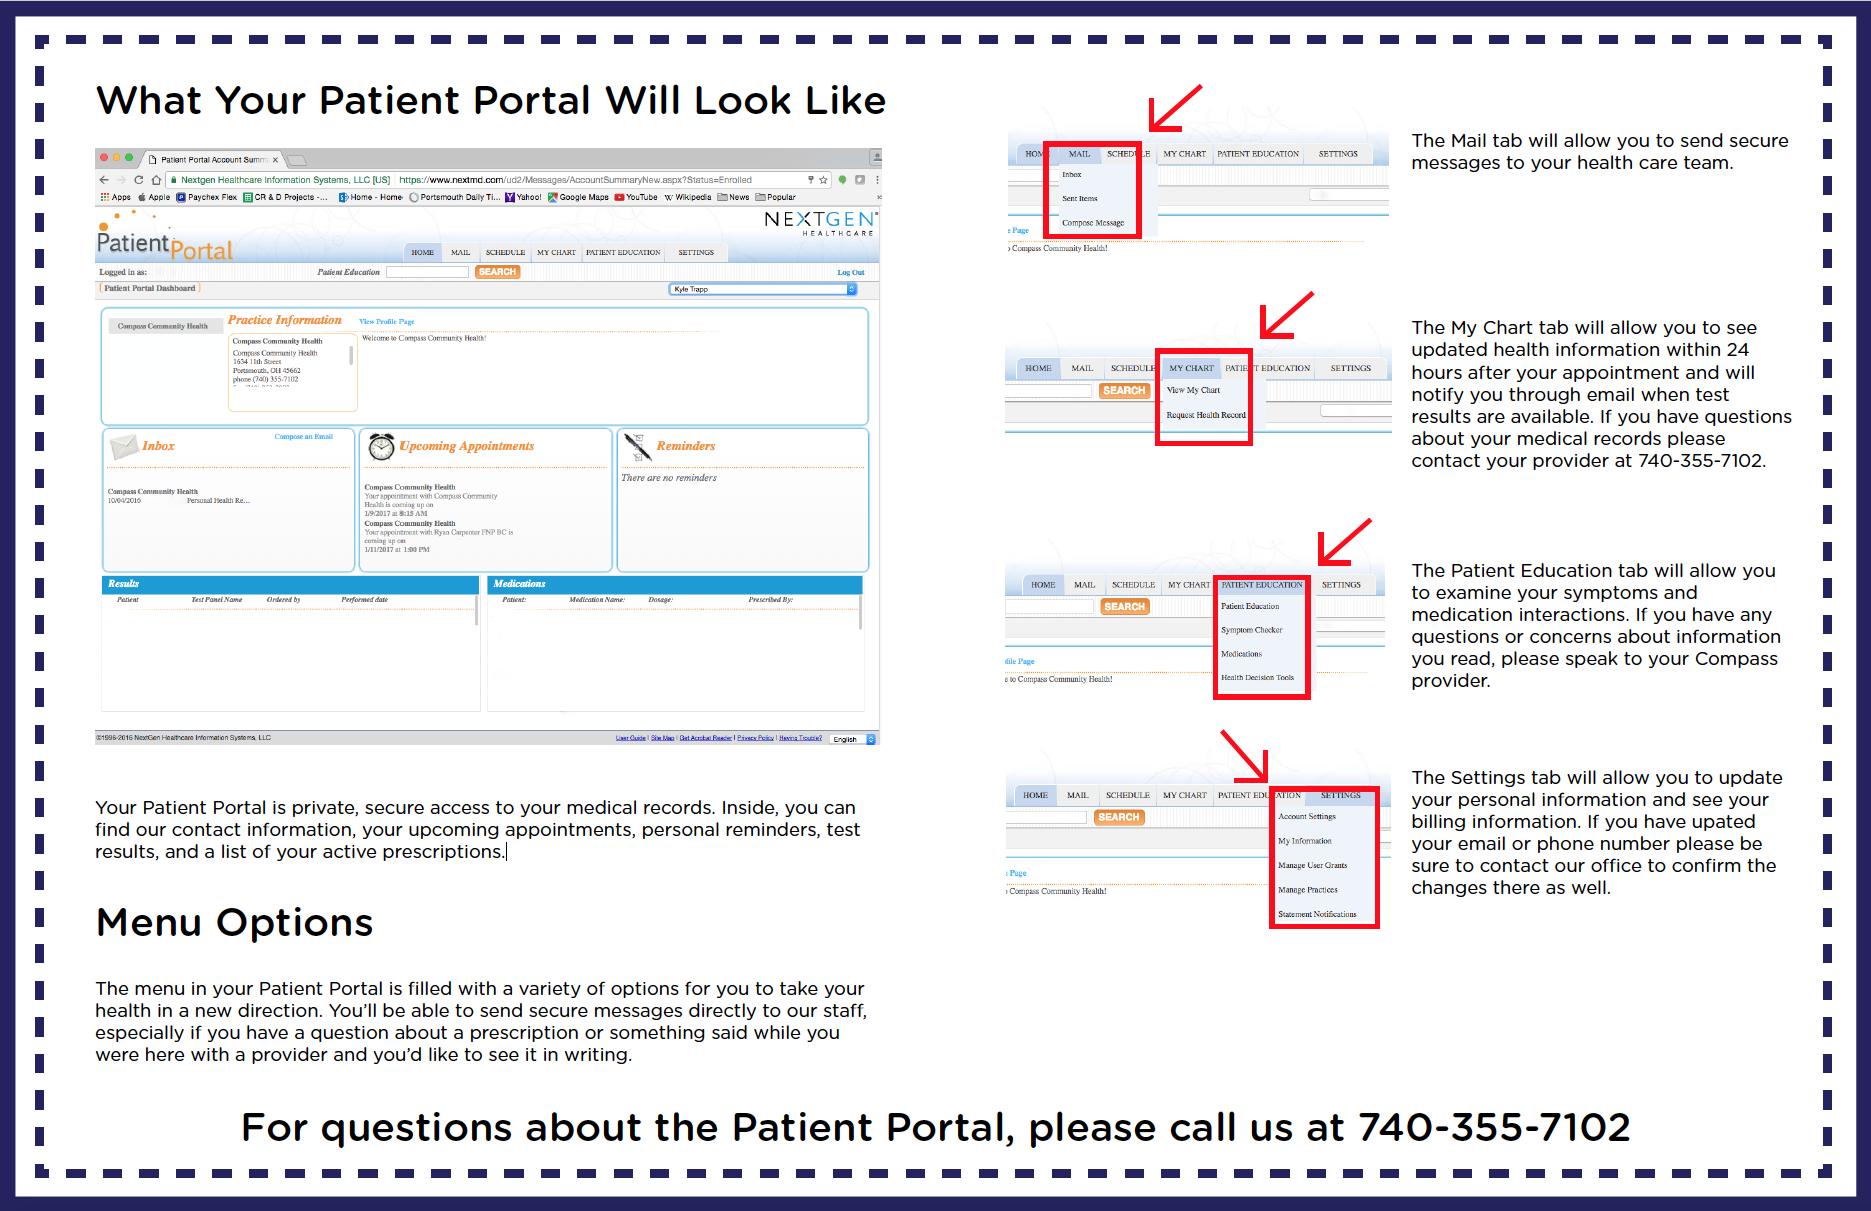 Patient Portal Walkthrough Side 1